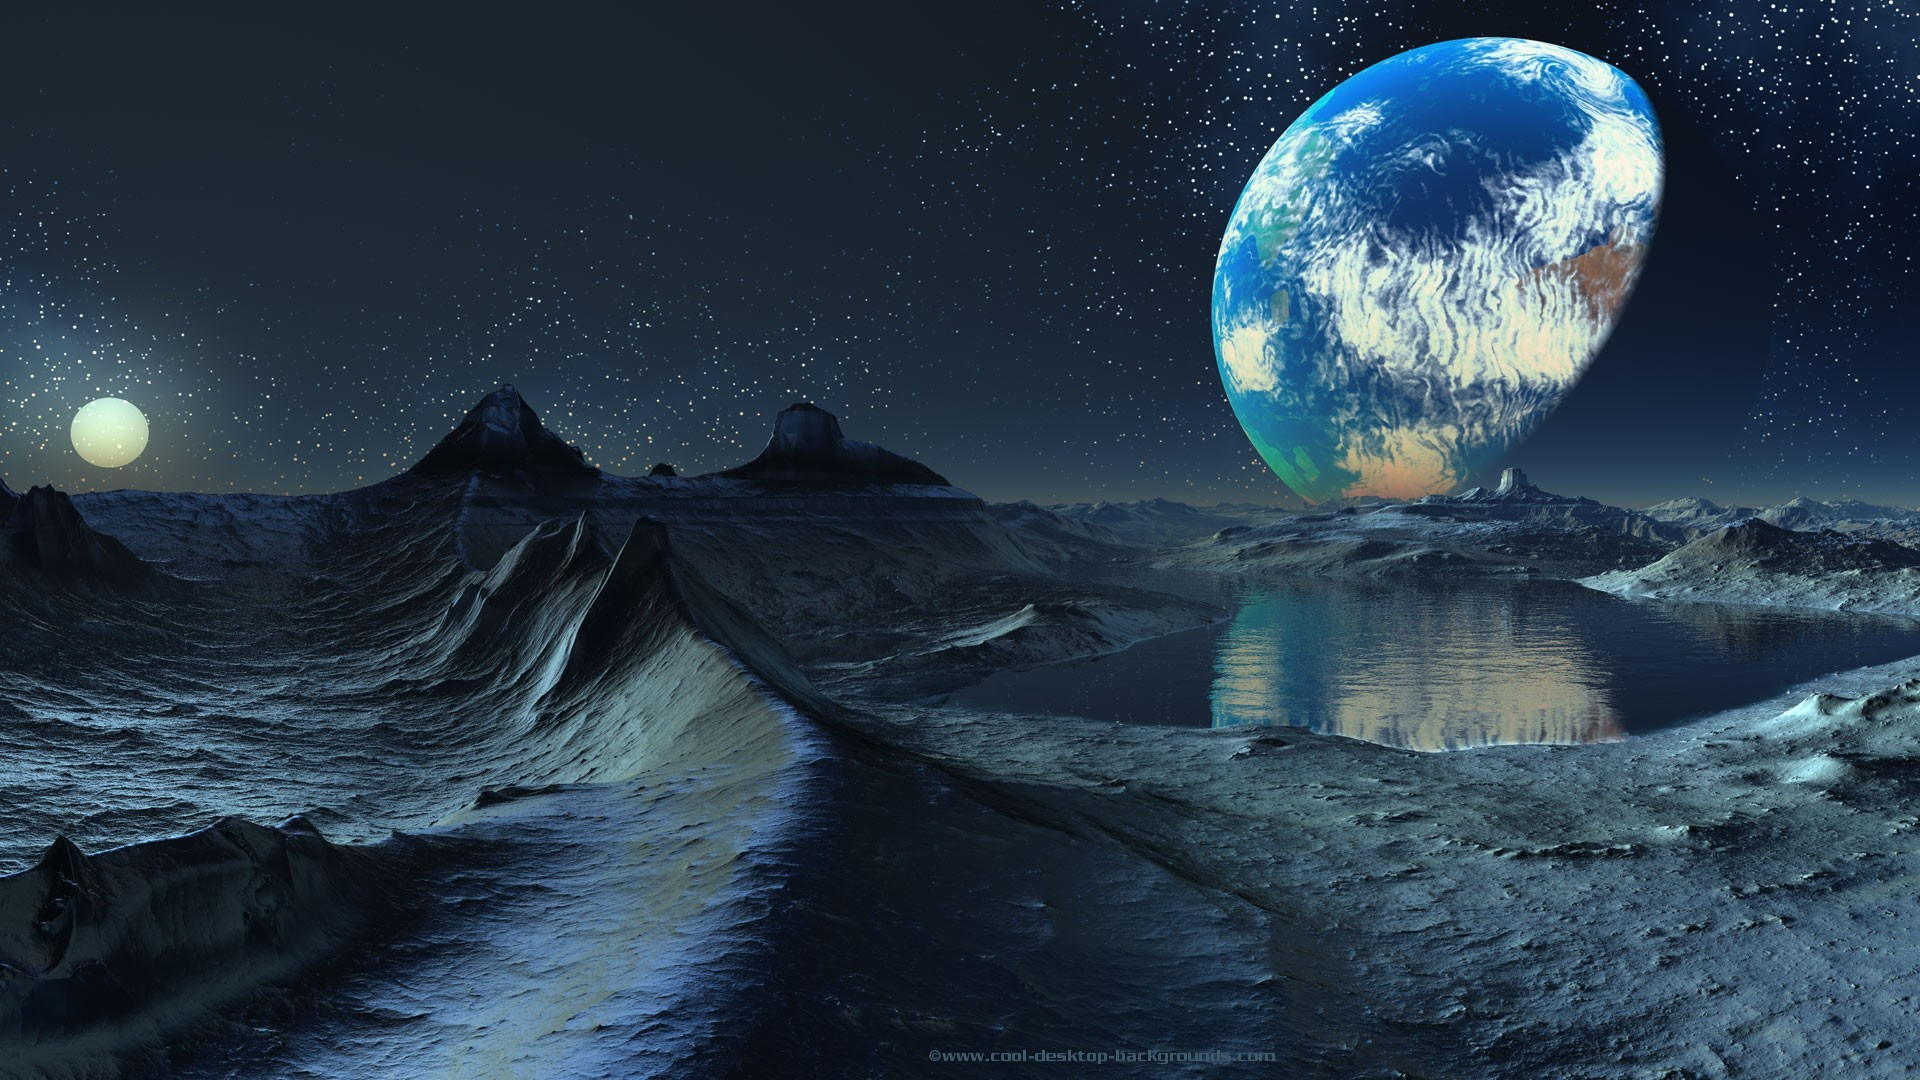 Space dawn planets moon fantasy art artwork wallpaper ...